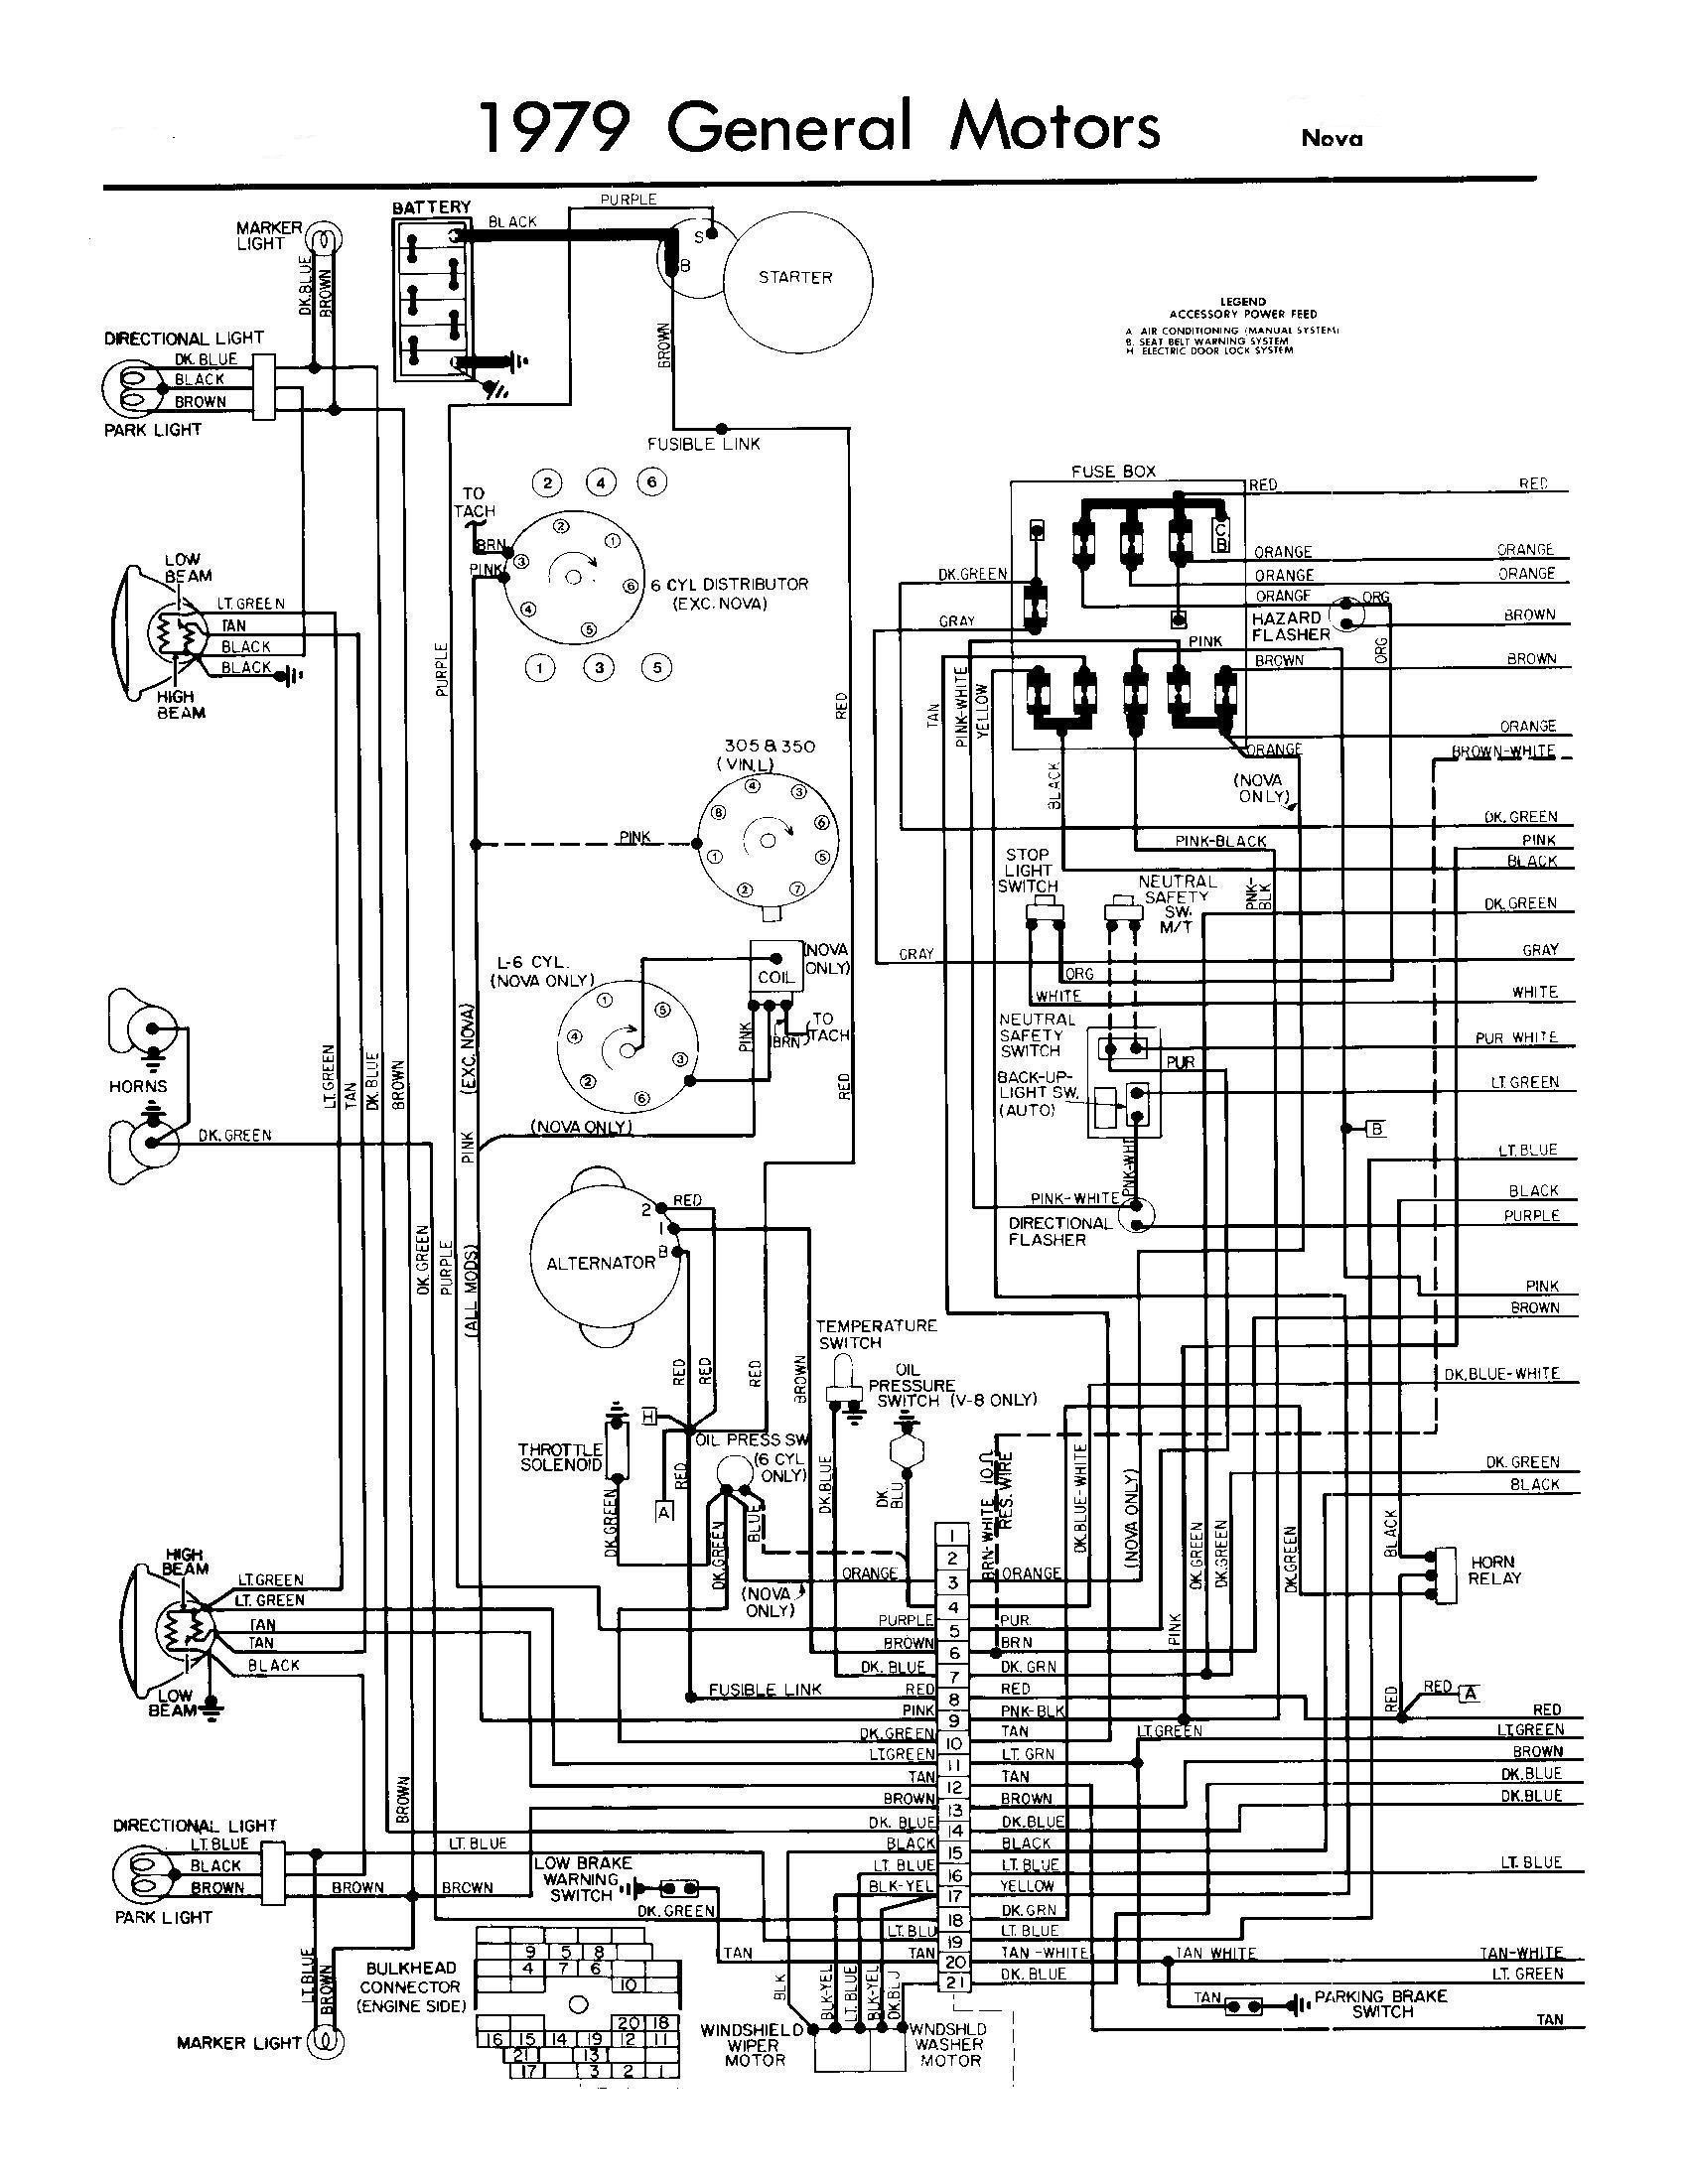 K40 Diffuser G5 Wiring Diagram - custom project wiring diagram on